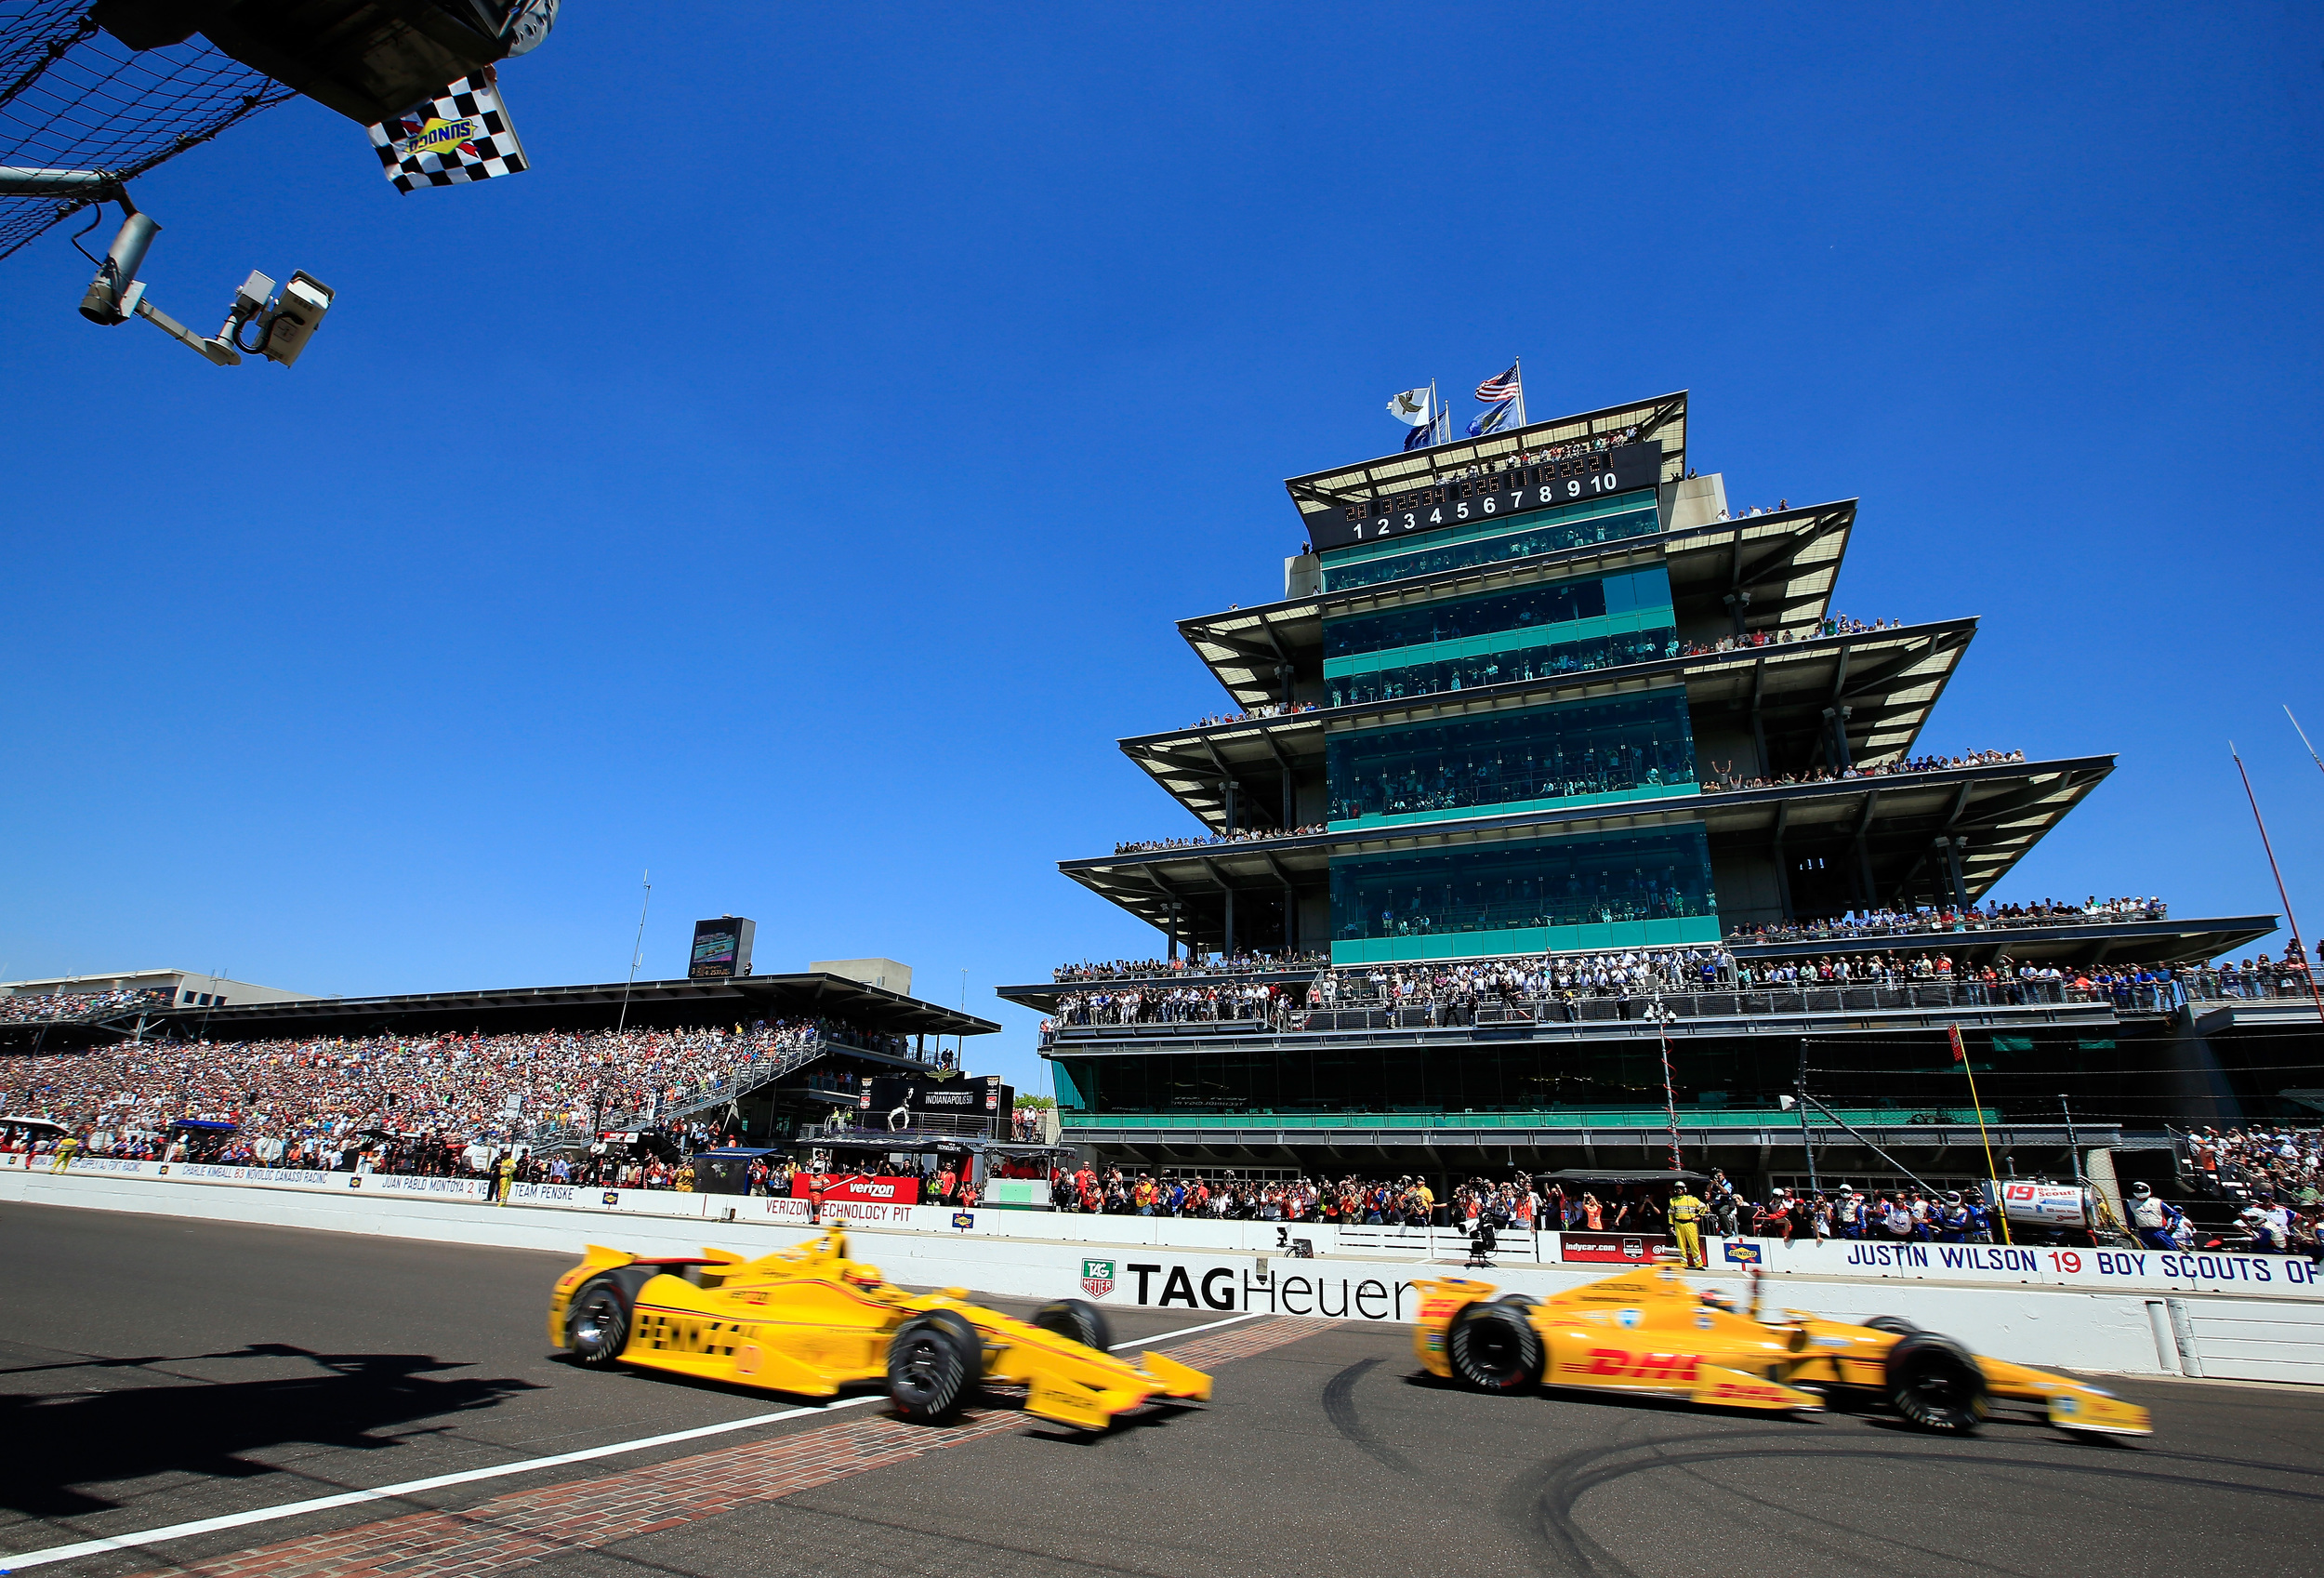 98th-indianapolis-500-mile-race-1.jpg